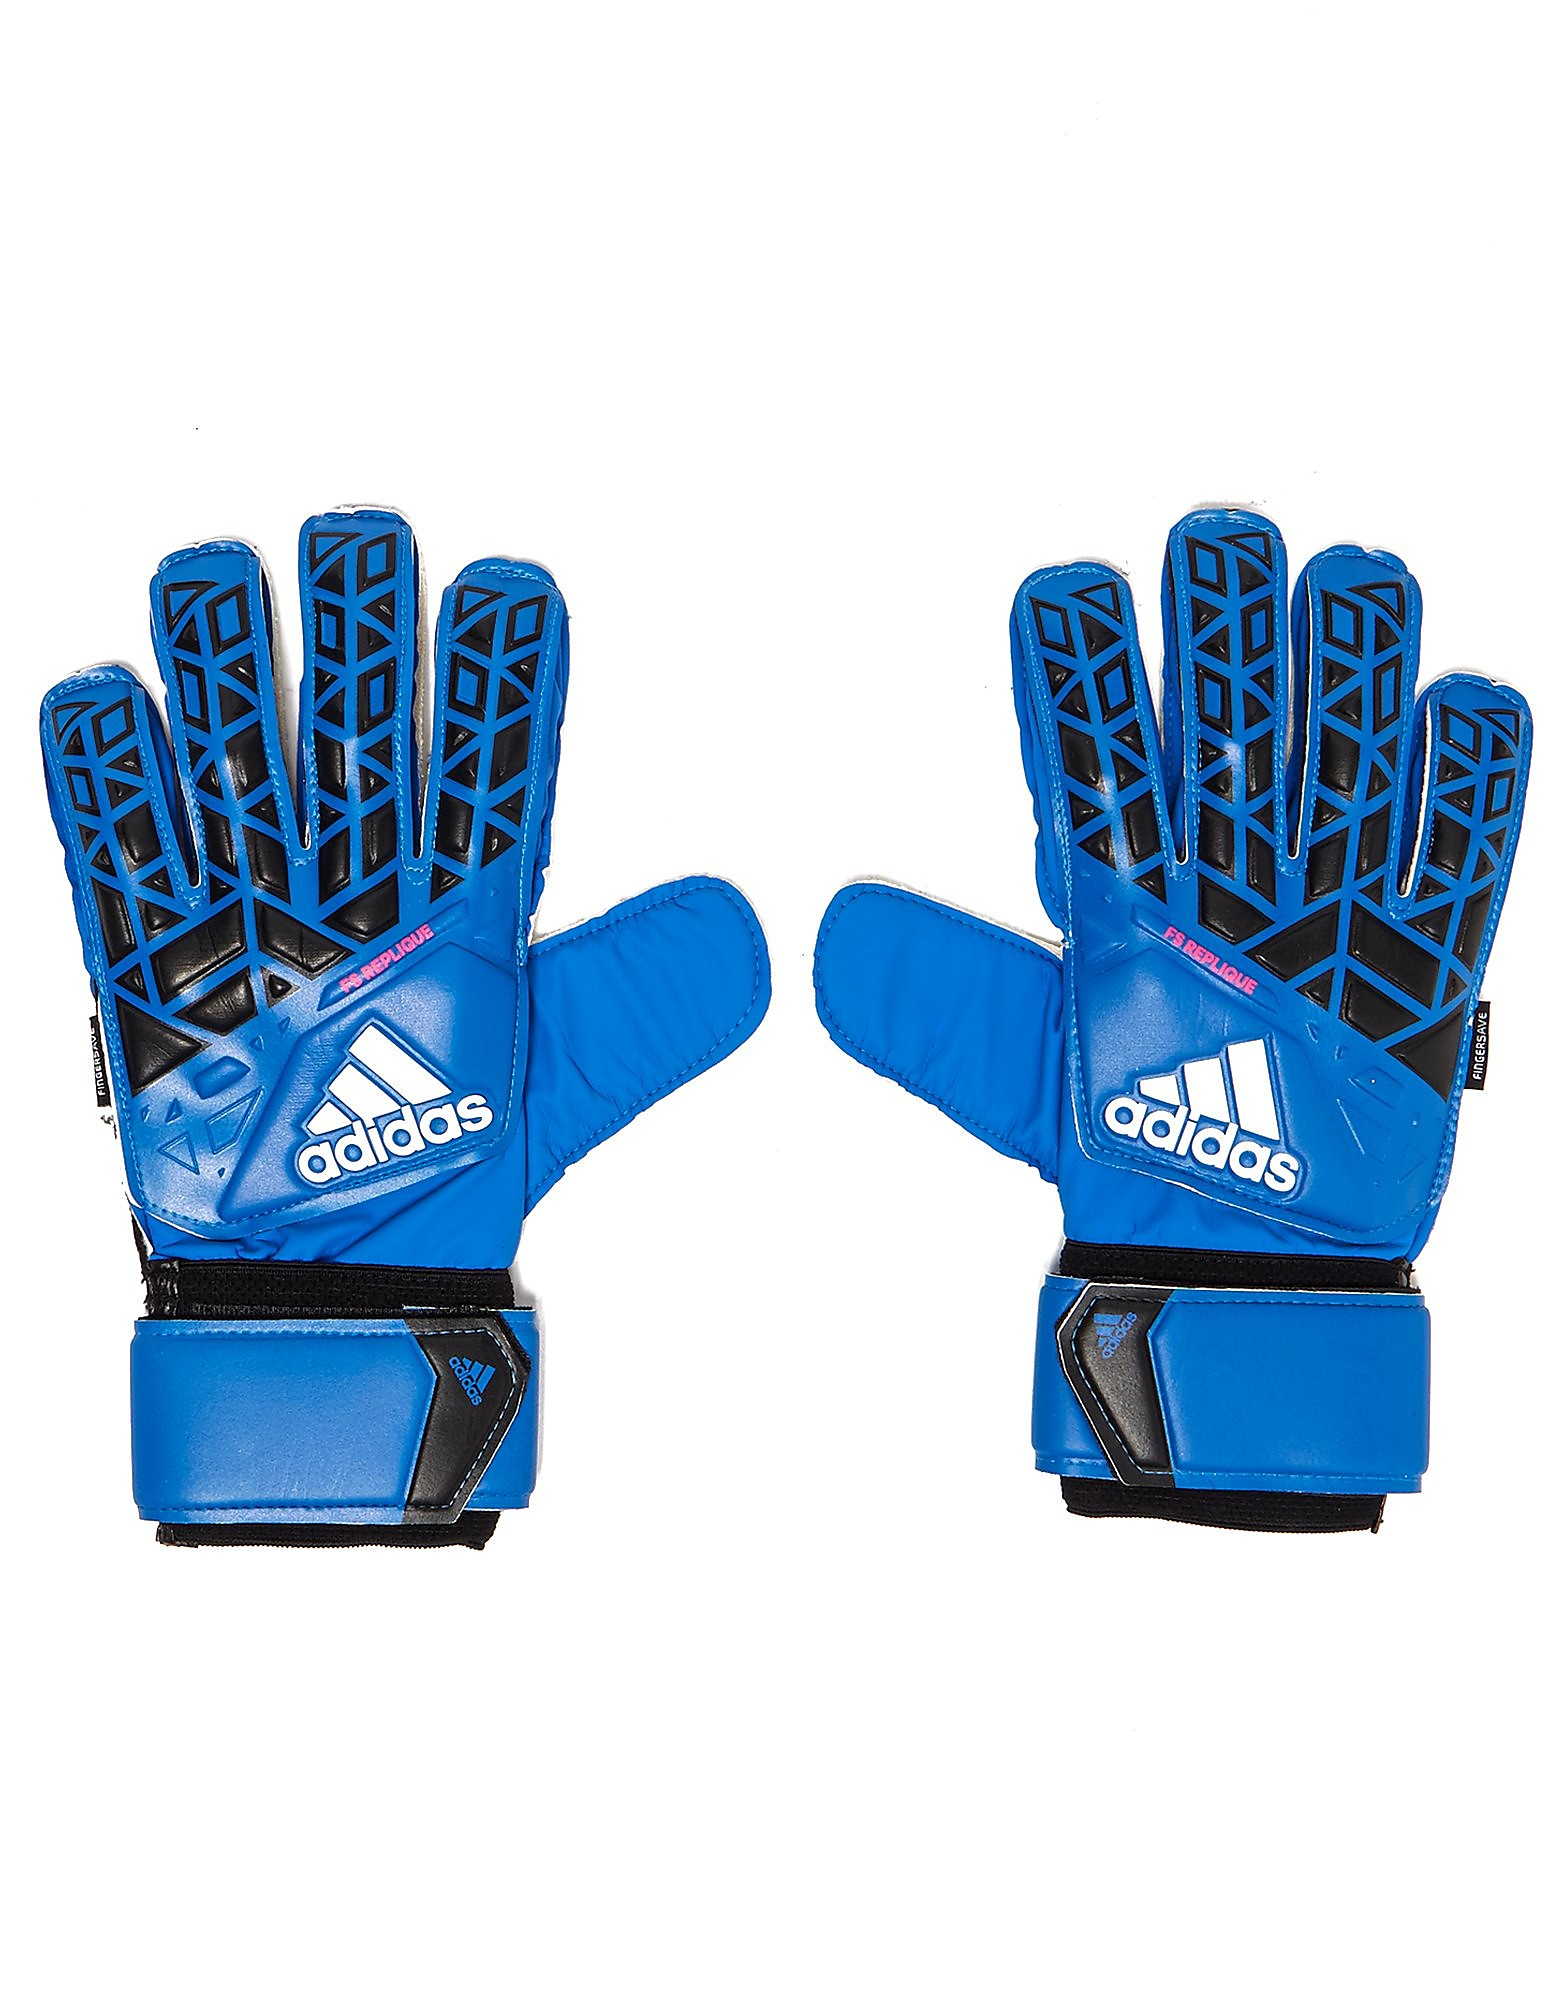 adidas Ace Fingersave Goalkeeping Gloves